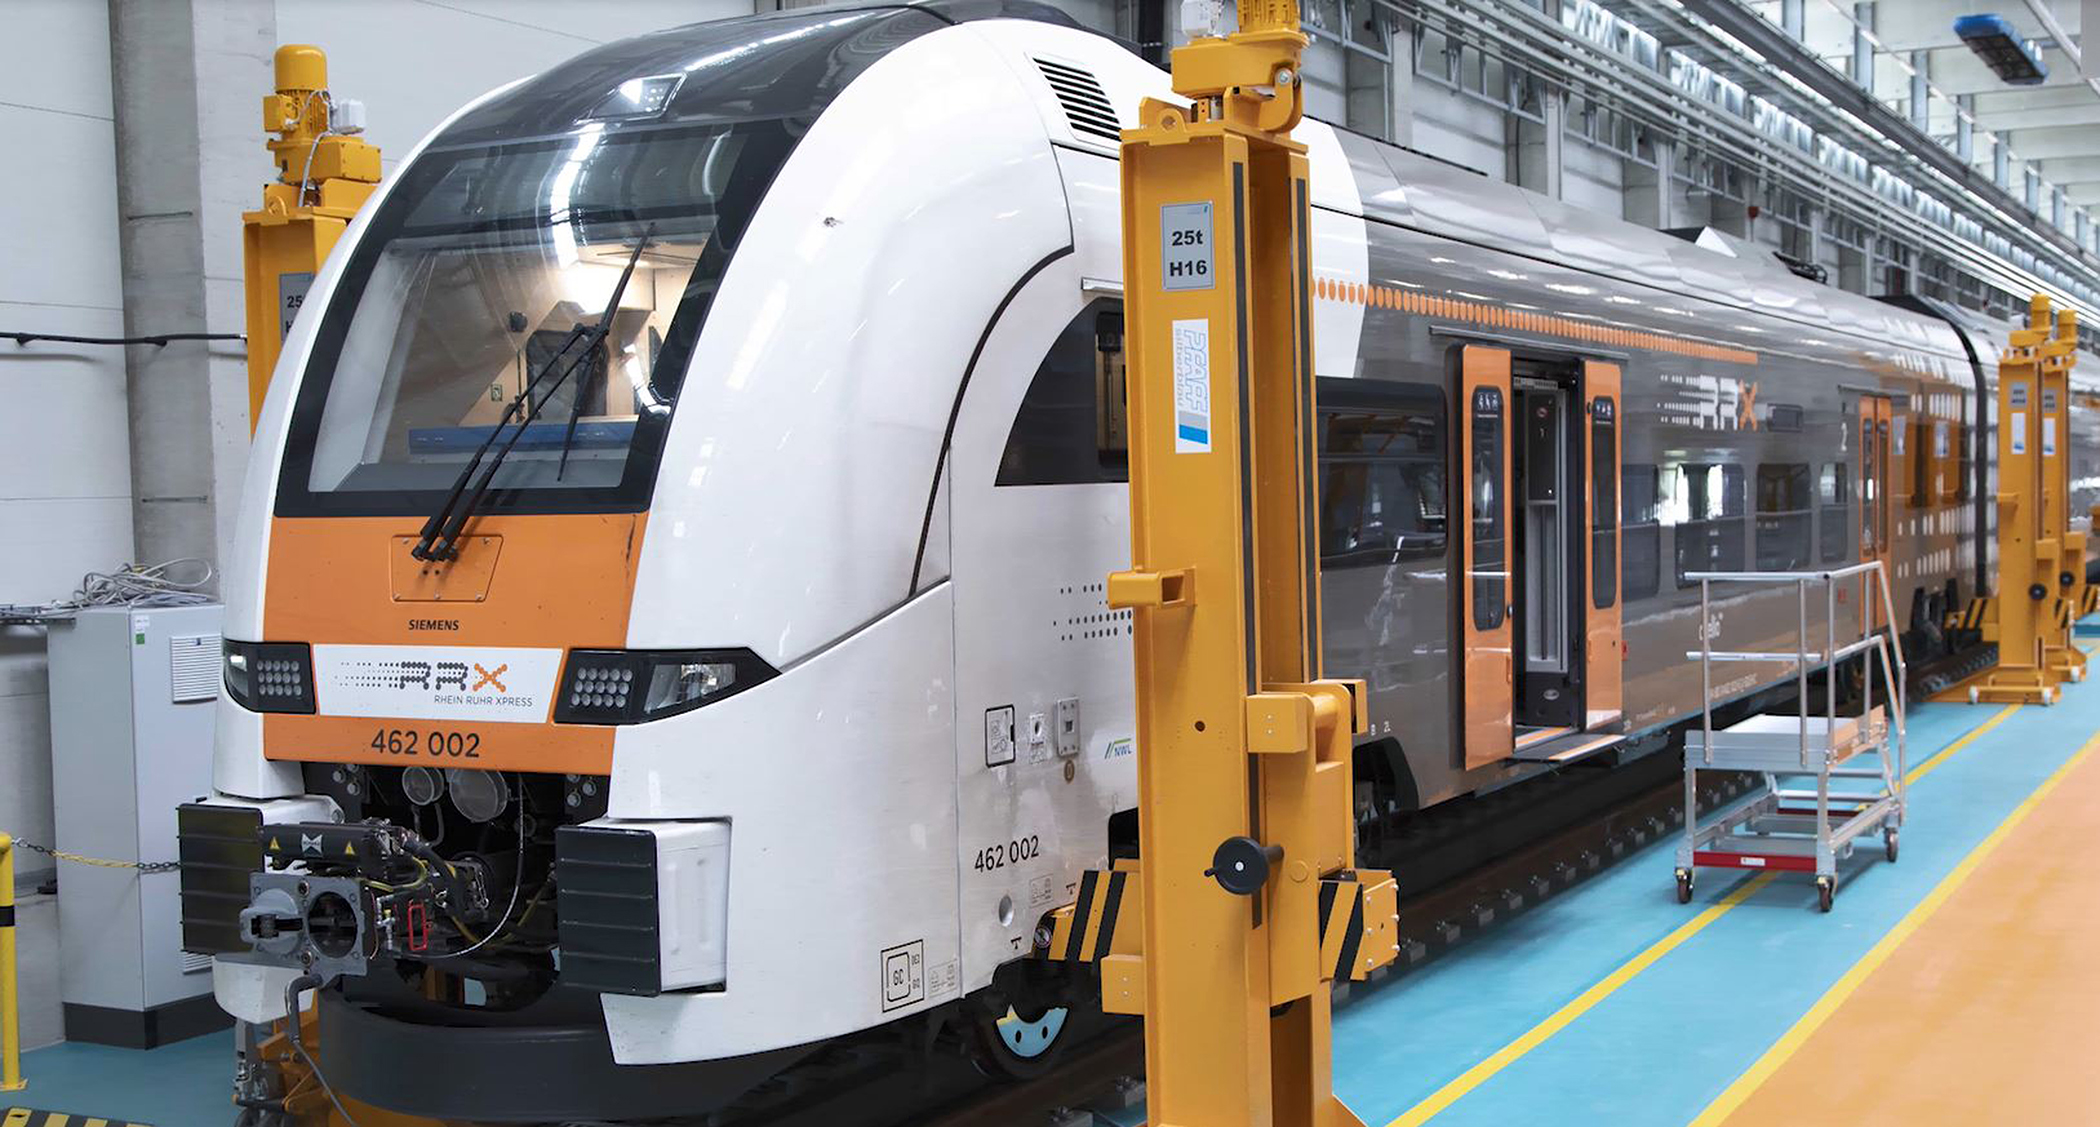 Siemens mobility rail center with train